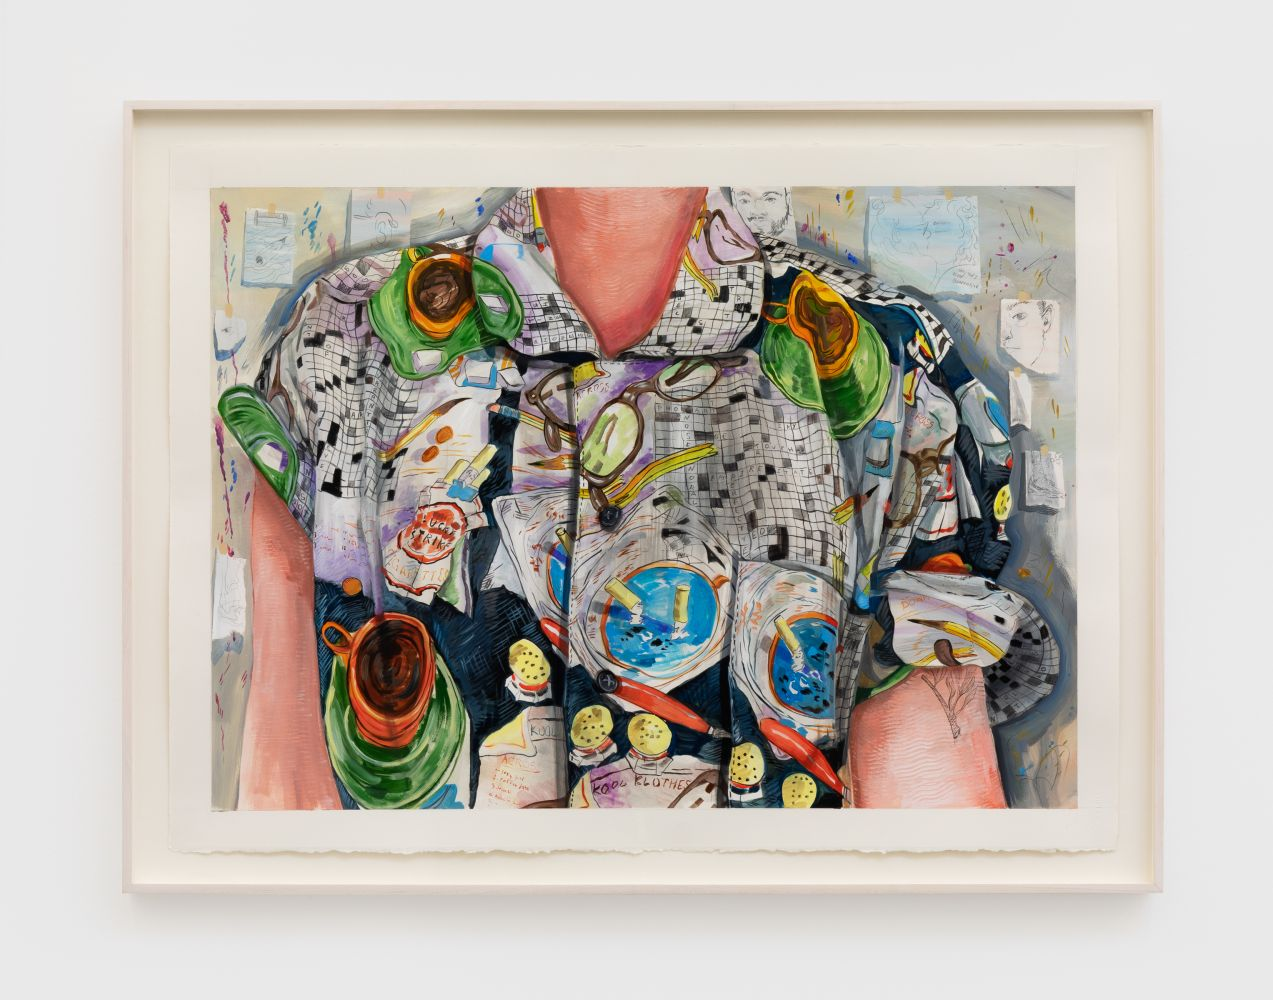 Rebecca Ness Shirt Study, 2020 Gouache and pencil on paper 22 x 30 in 55.9 x 76.2 cm (RNE20.005)